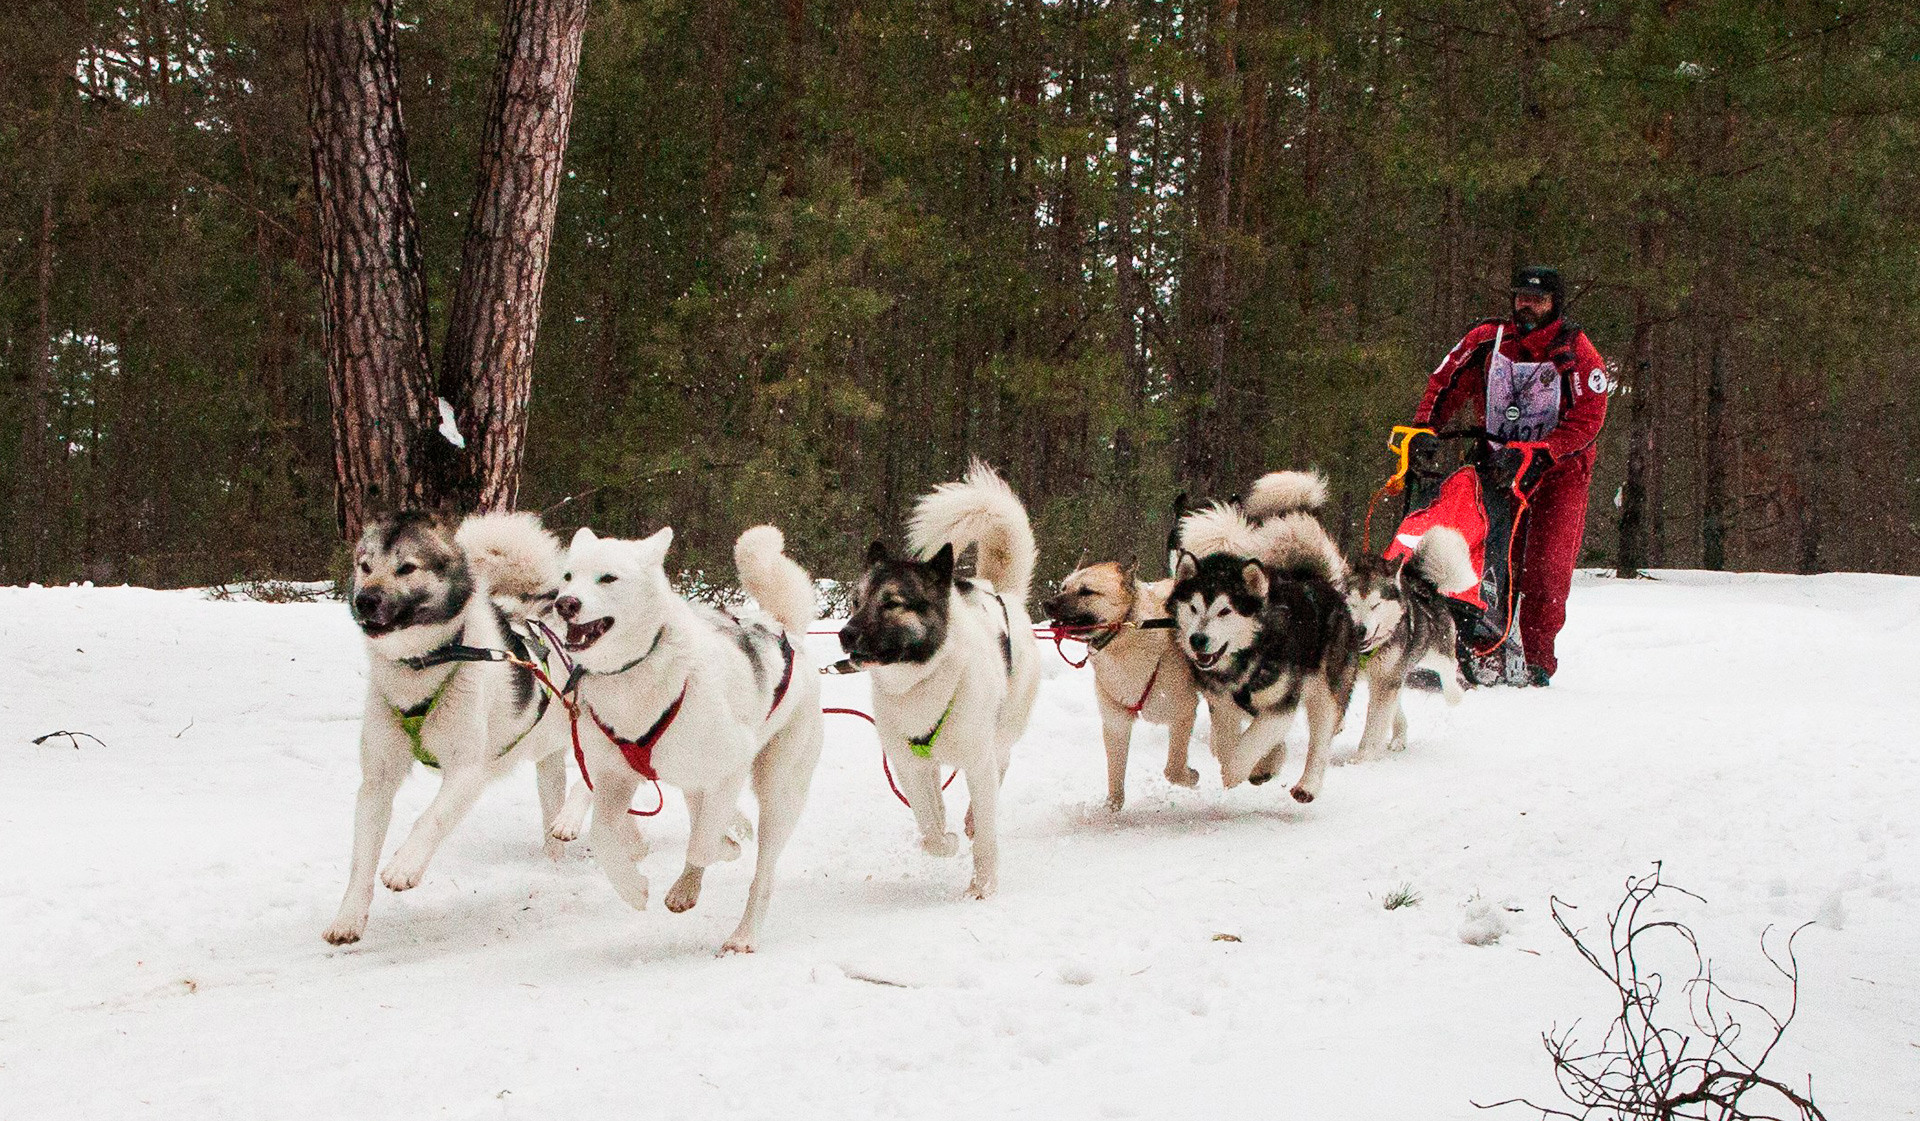 In Nizhny Novgorod, be prepared for scores of cute, blue-eyed huskies.